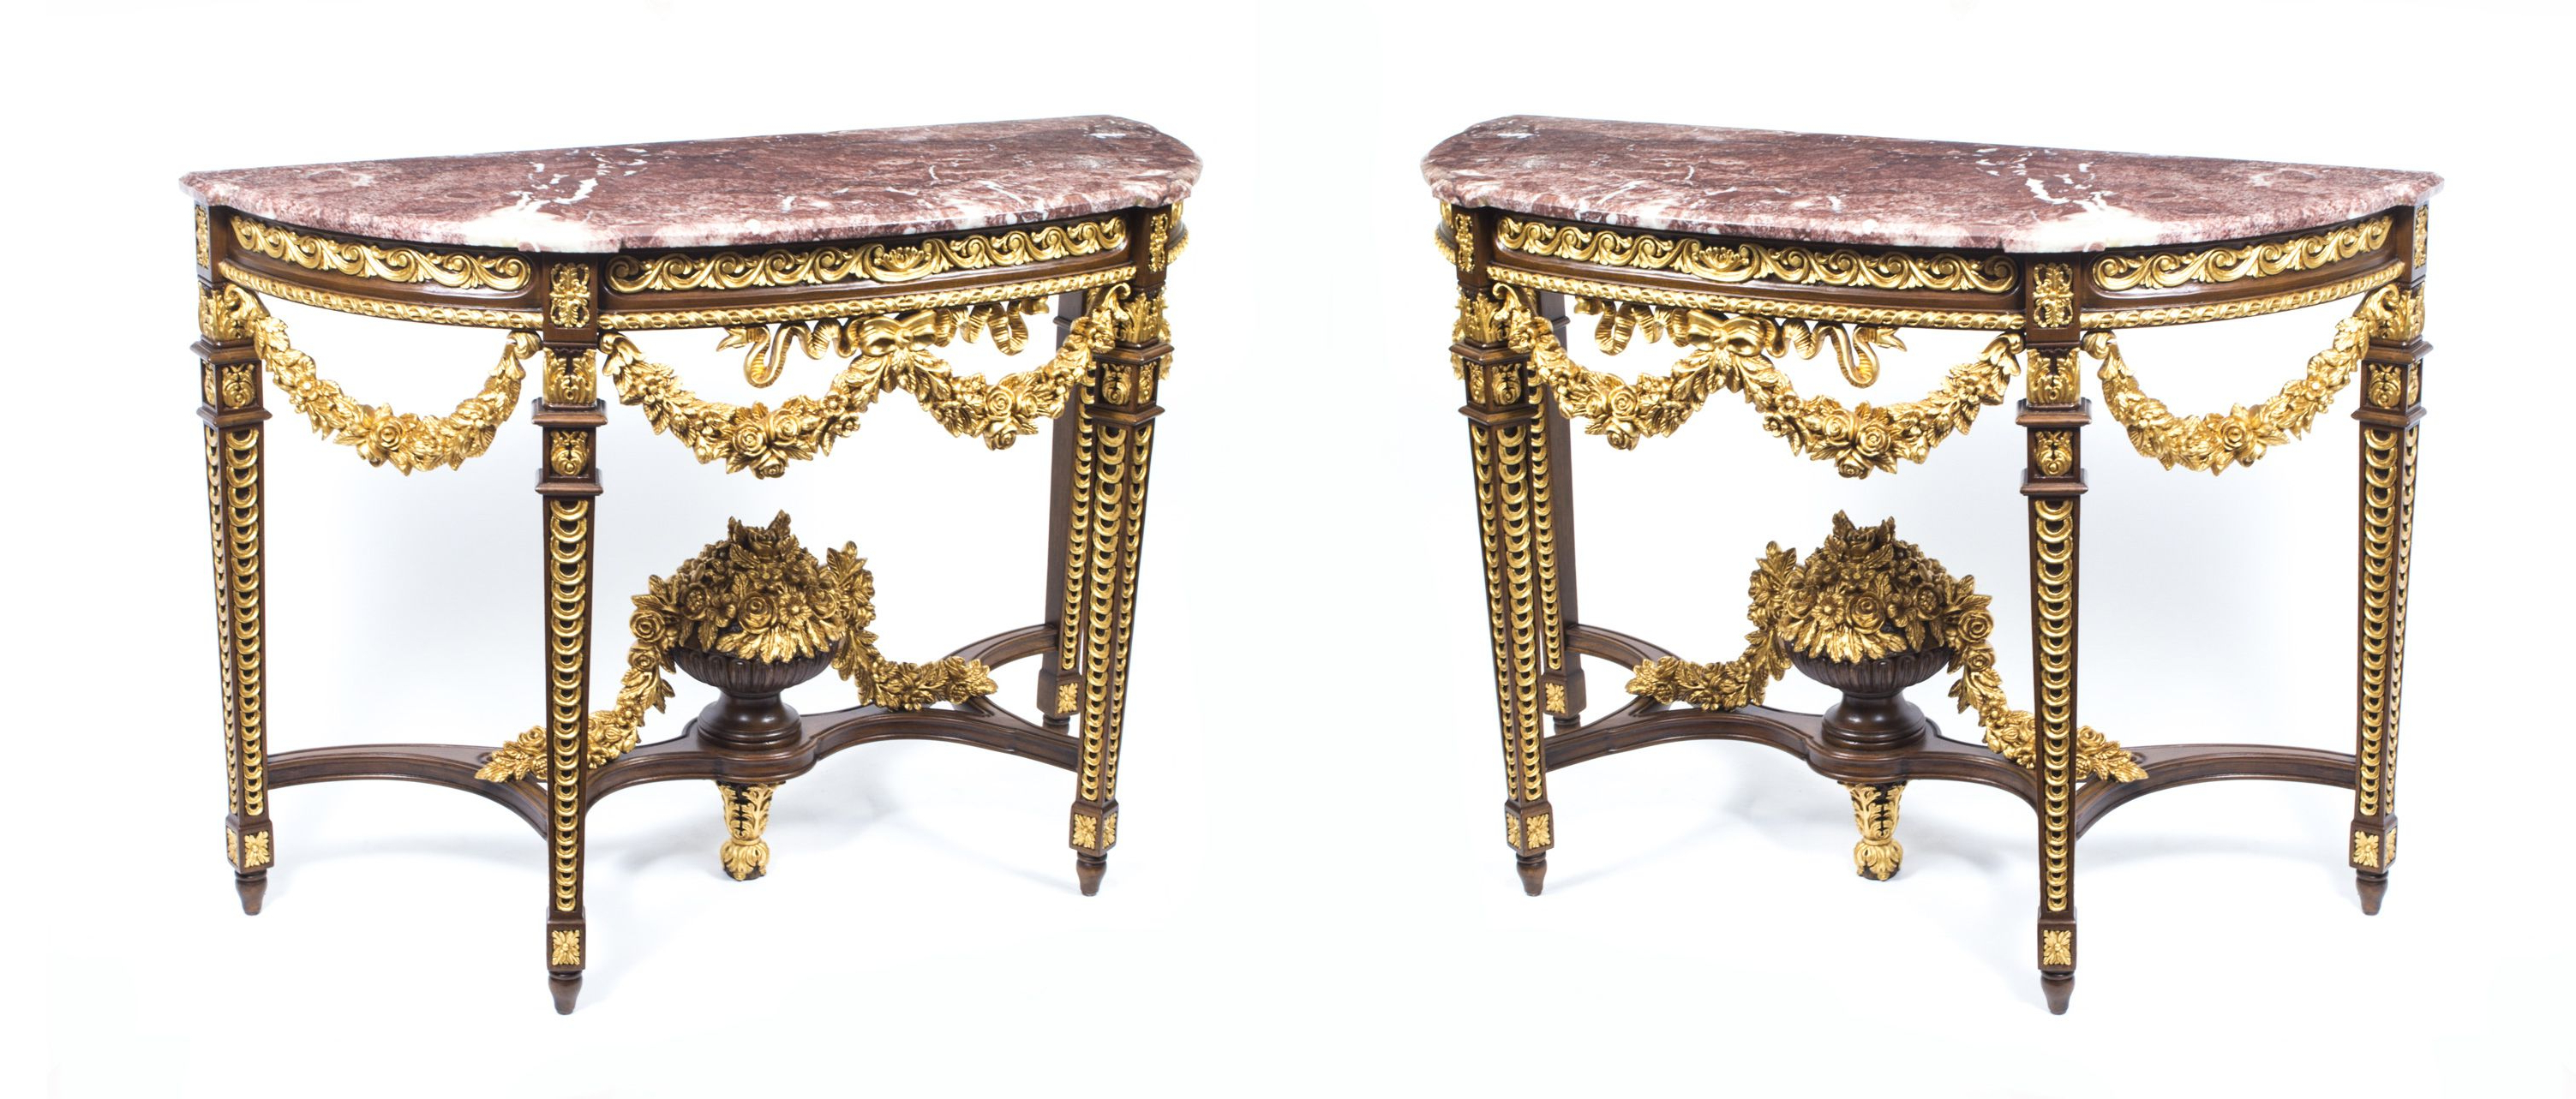 Preferred A Fantastic Pair Of Half Moon Console Tables In The Opulent Rococo Regarding Roman Metal Top Console Tables (Gallery 19 of 20)